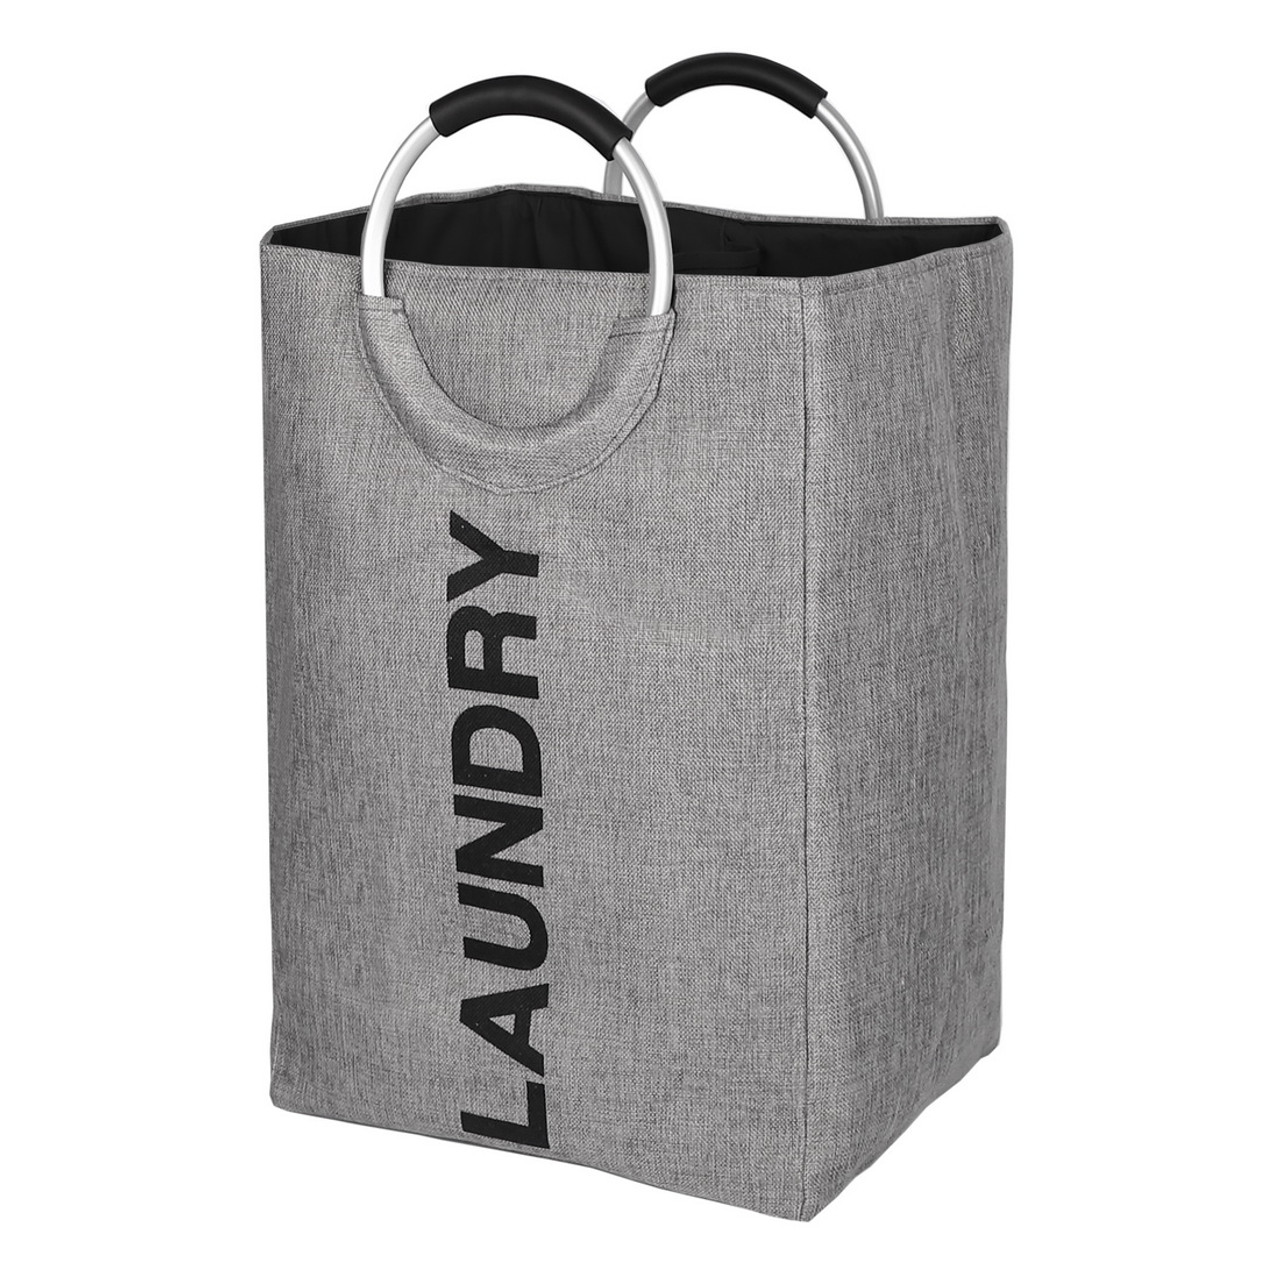 Foldable Clothes Bag Collapsible Fabric Laundry Hamper Folding Washing Bin Dark Grey, XL DOKEHOM 115L X-Large Linen Imitation Laundry Basket with Coin Pocket